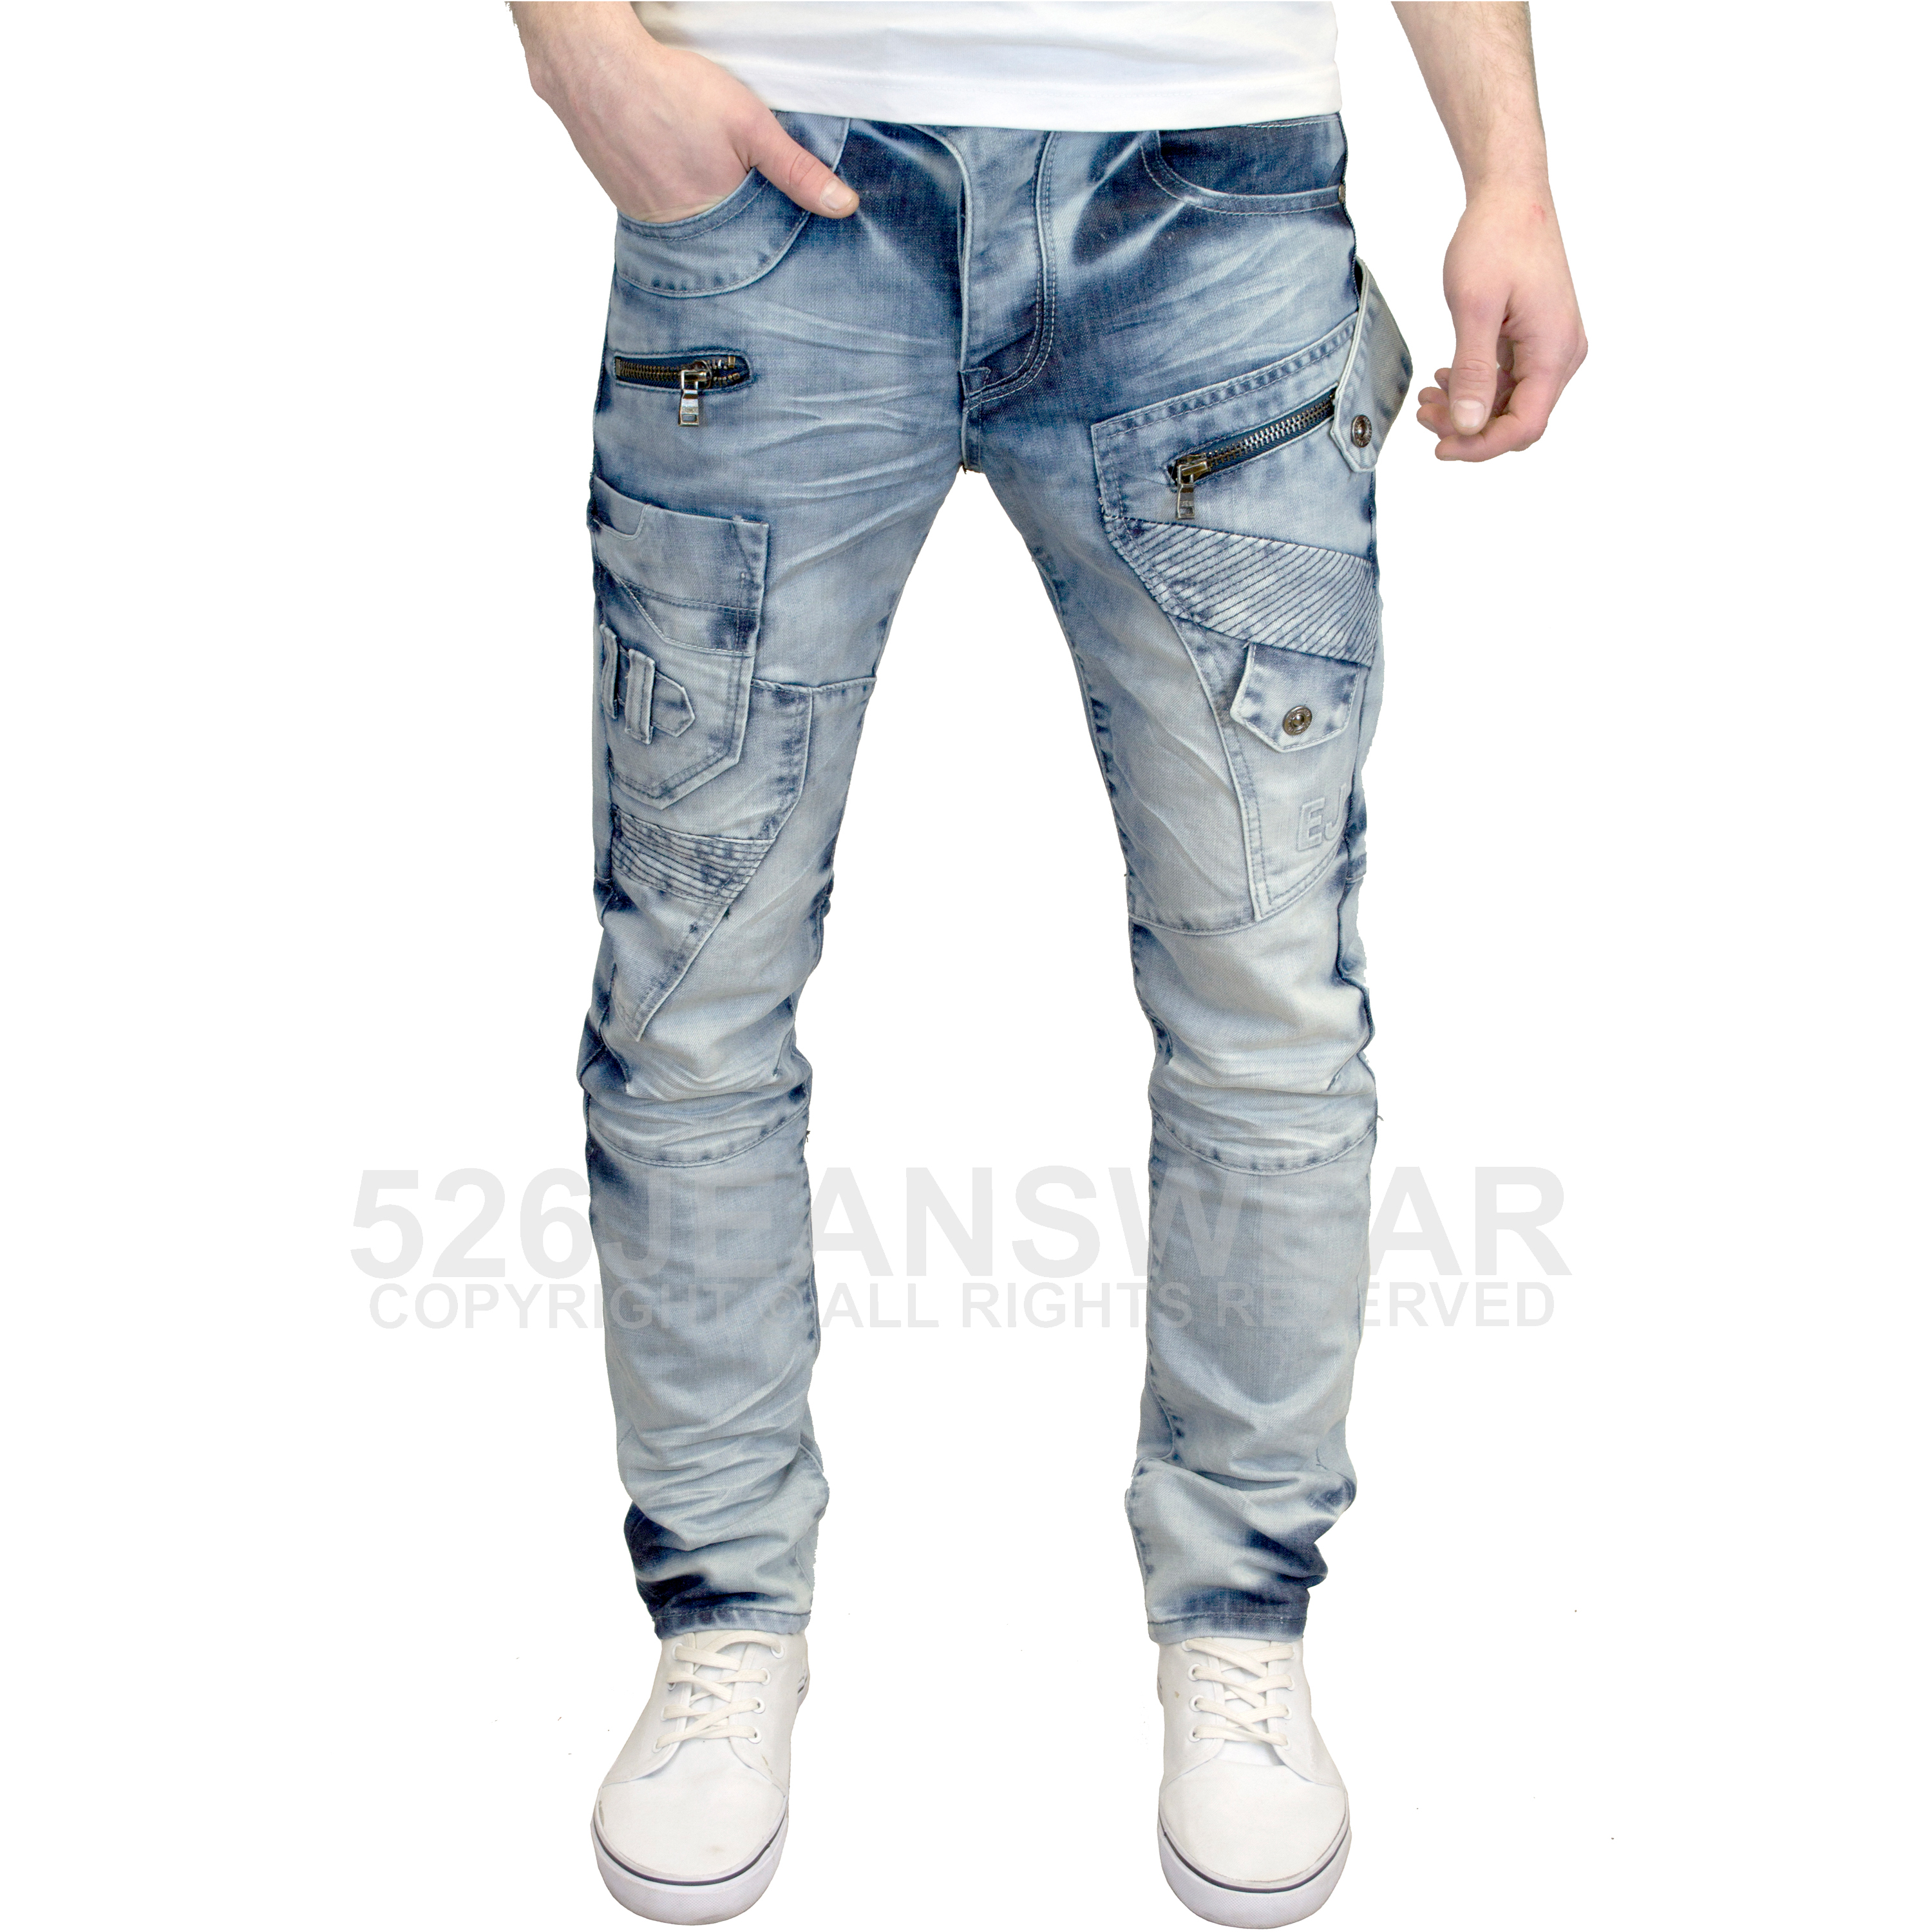 Eto Men/'s Designer Branded Distressed Rip Abraised Tapered Fit Jeans BNWT